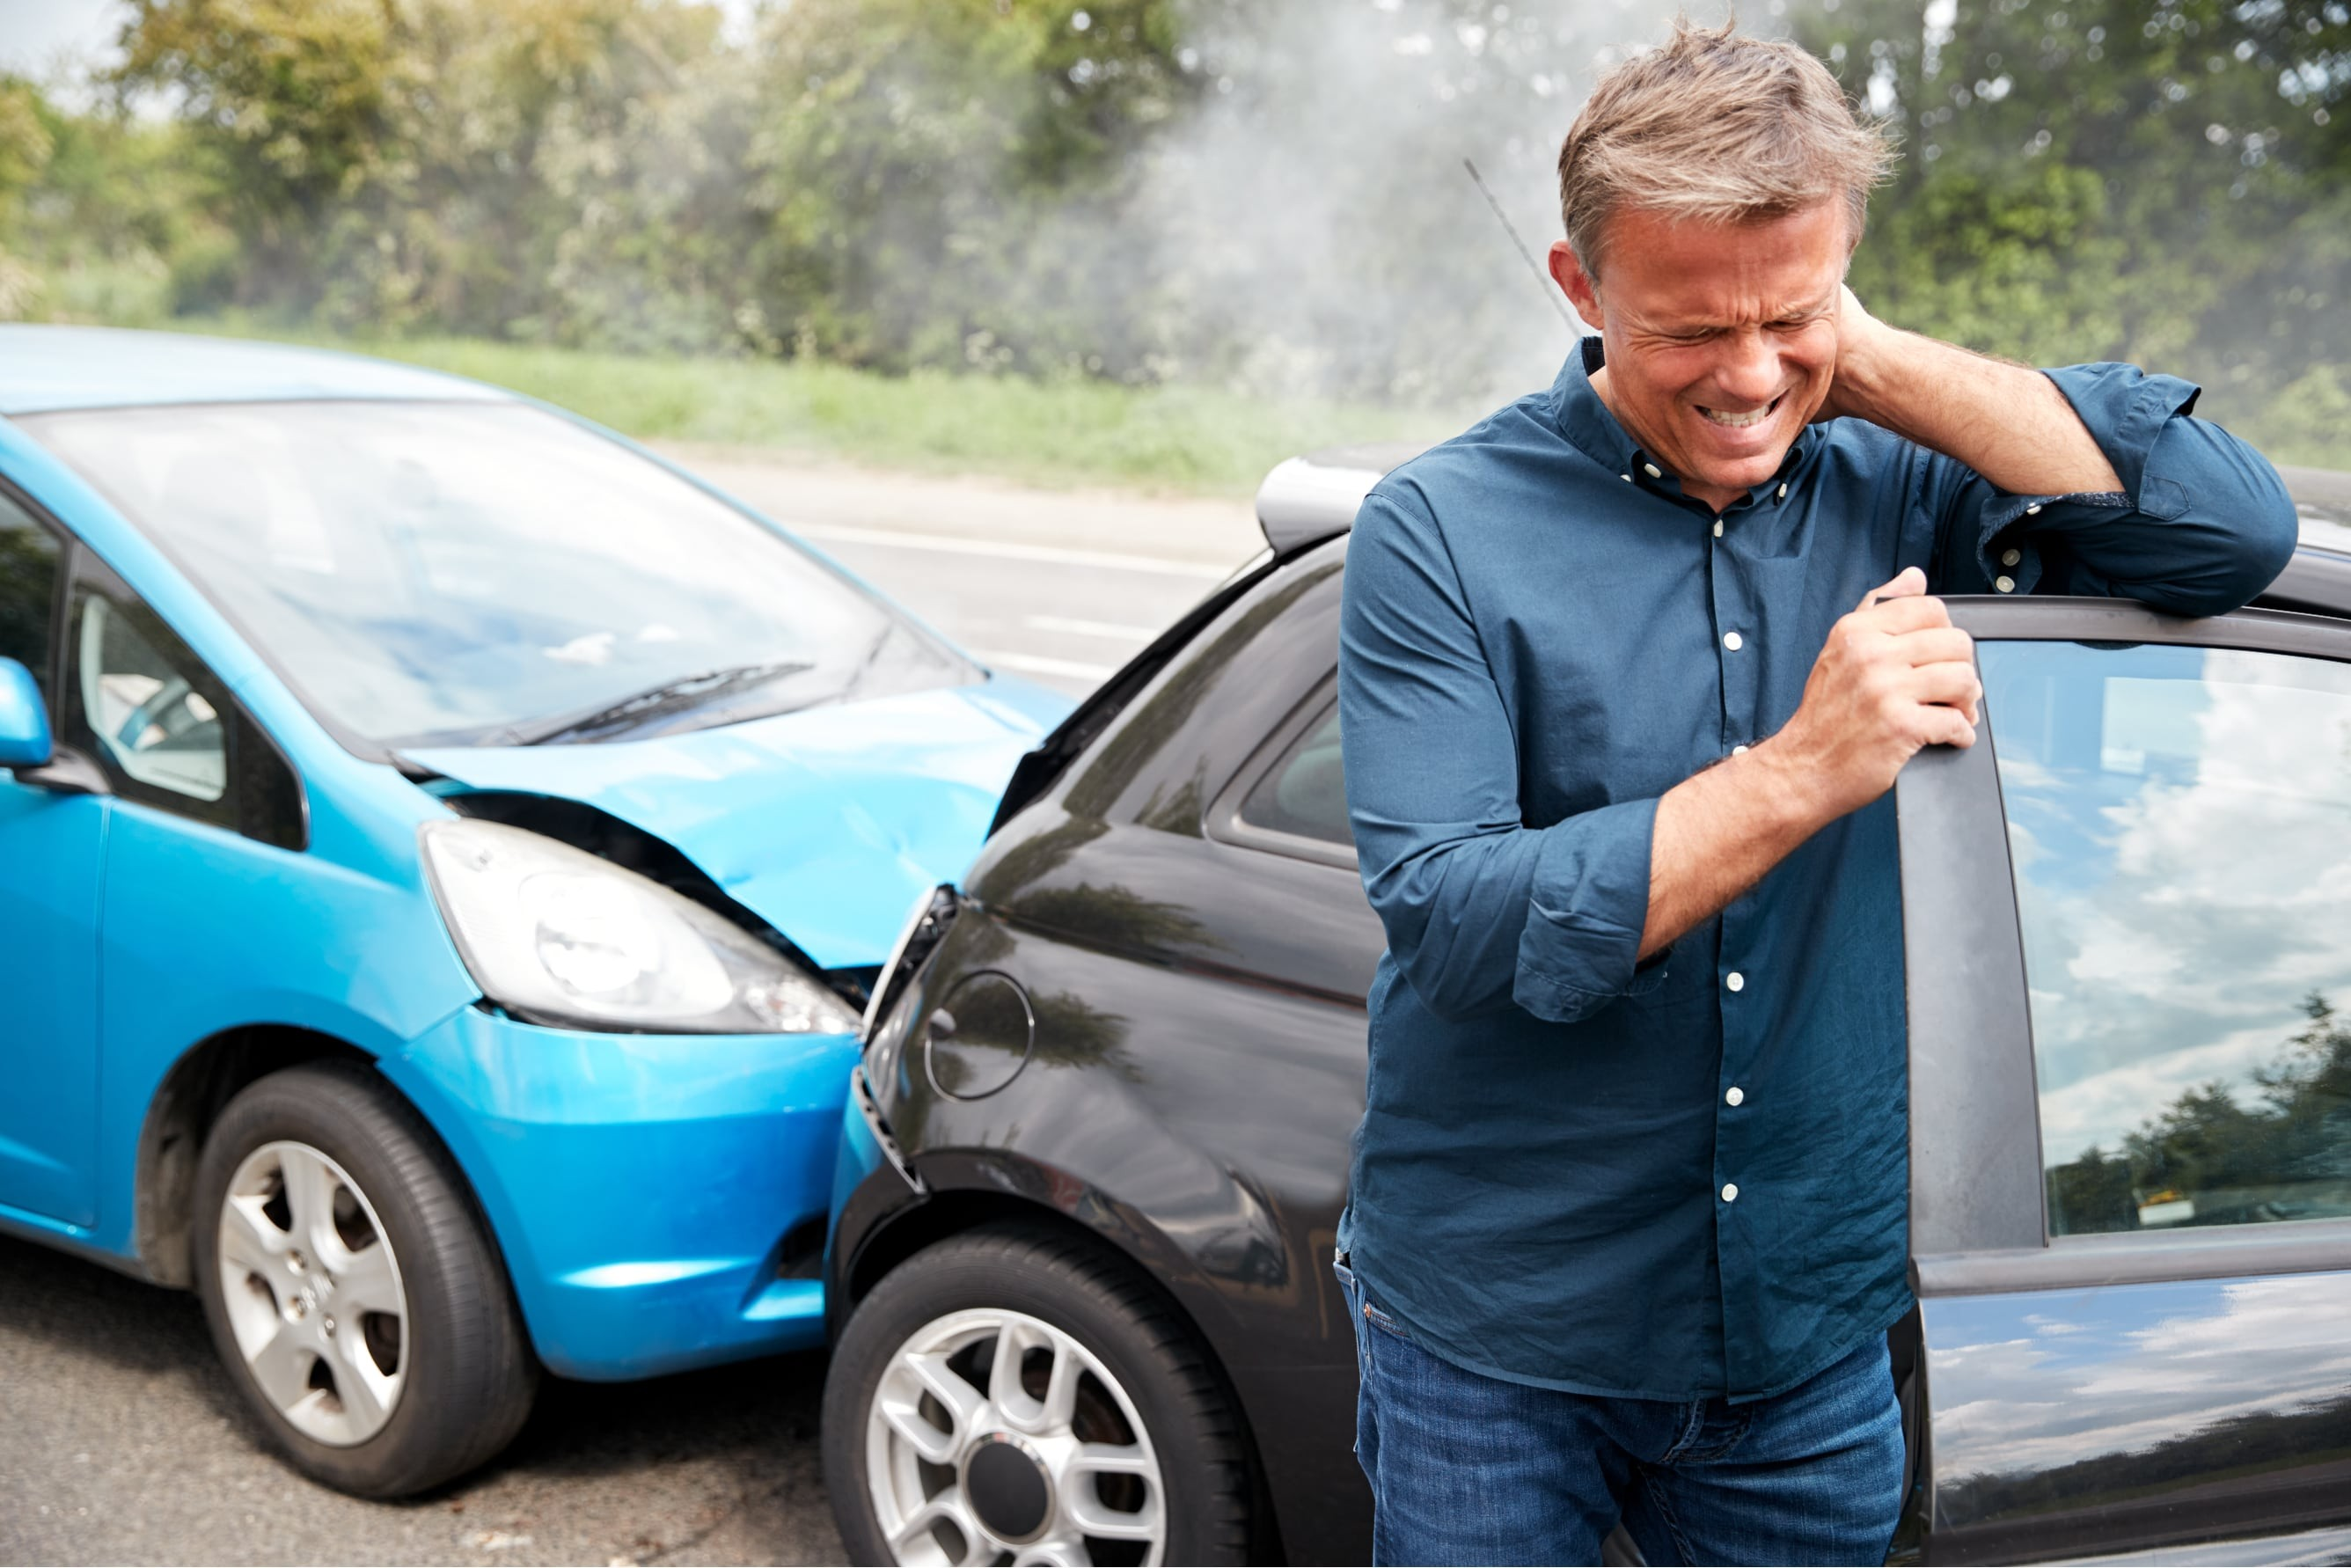 Car accident in Los Angeles? We may be able to help your upper cervical needs immediately